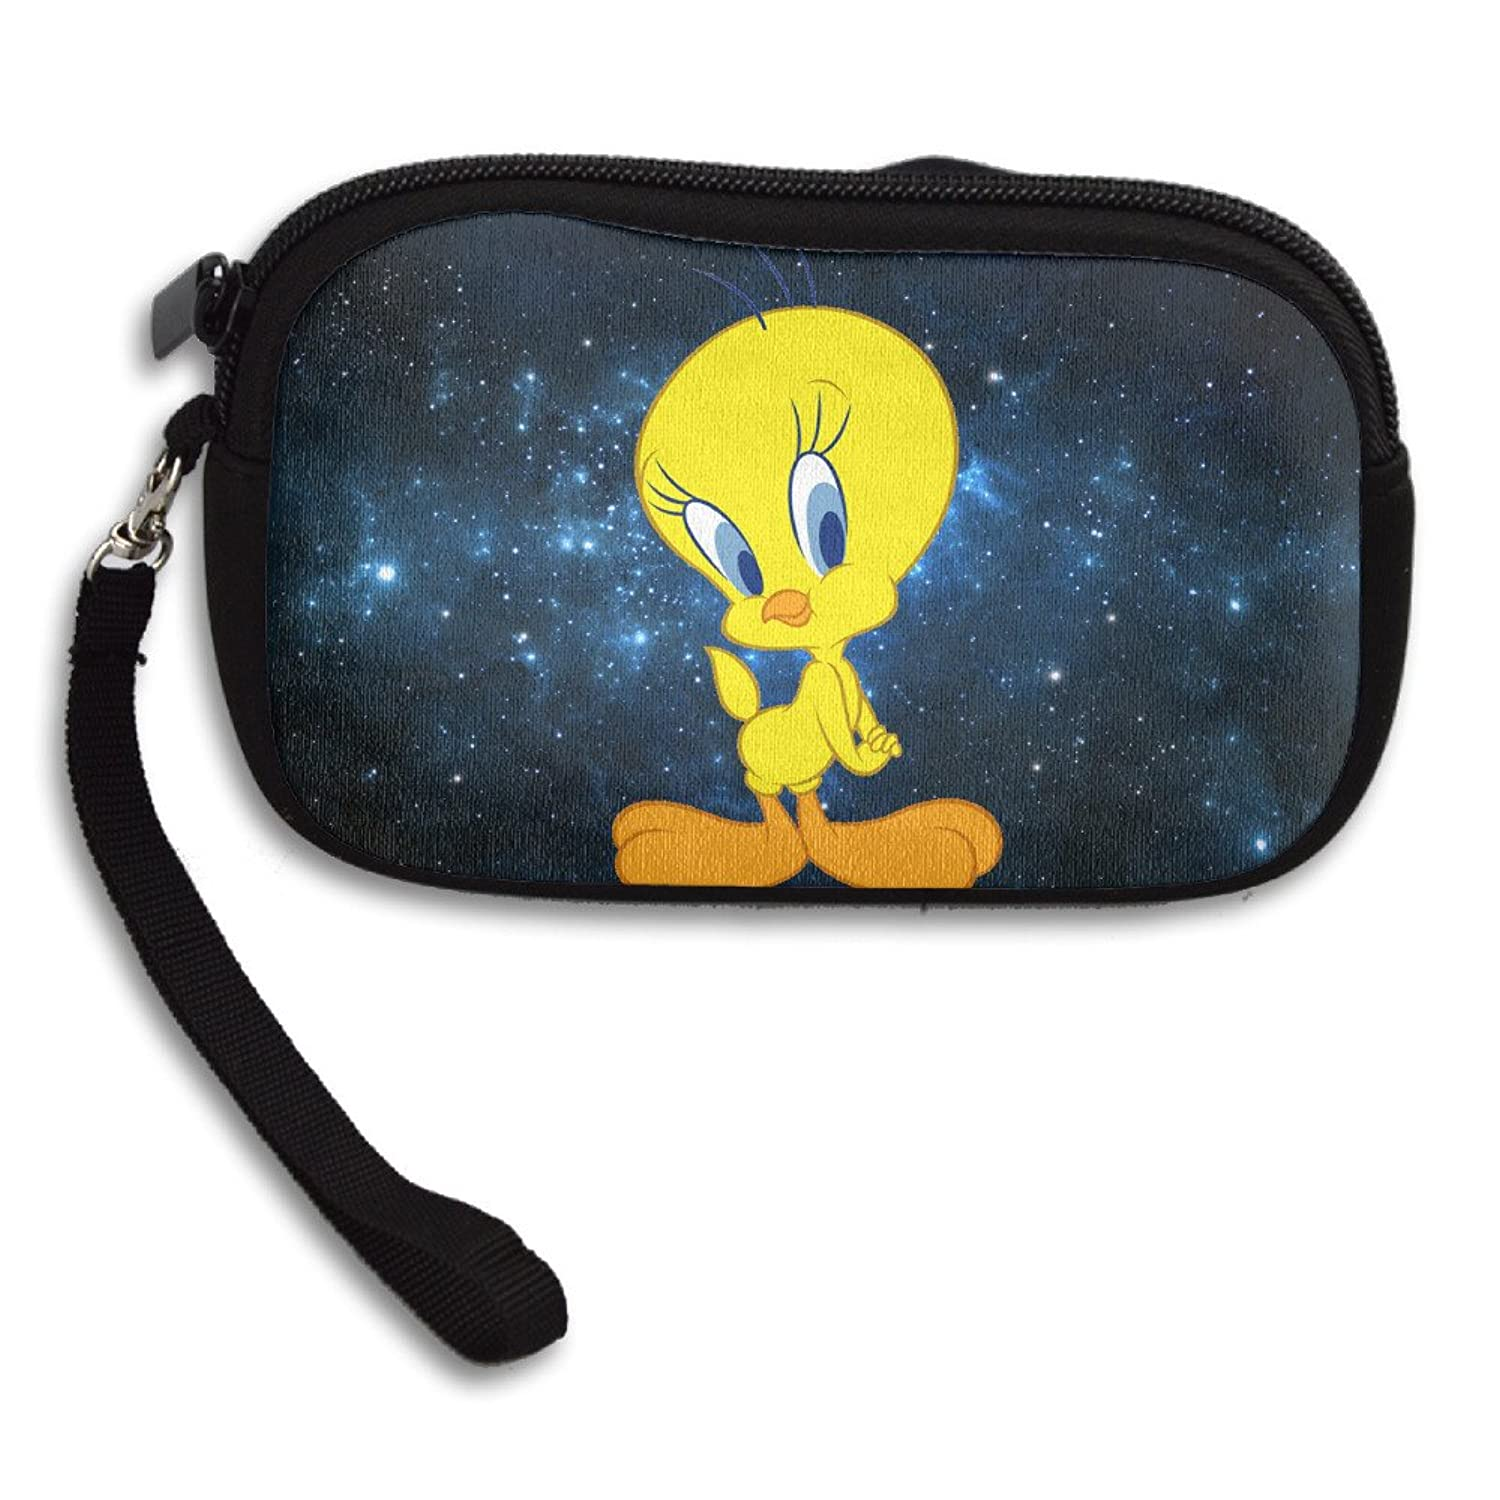 Tweety Bird Personality Wallet Card Holder With Zipper Closure